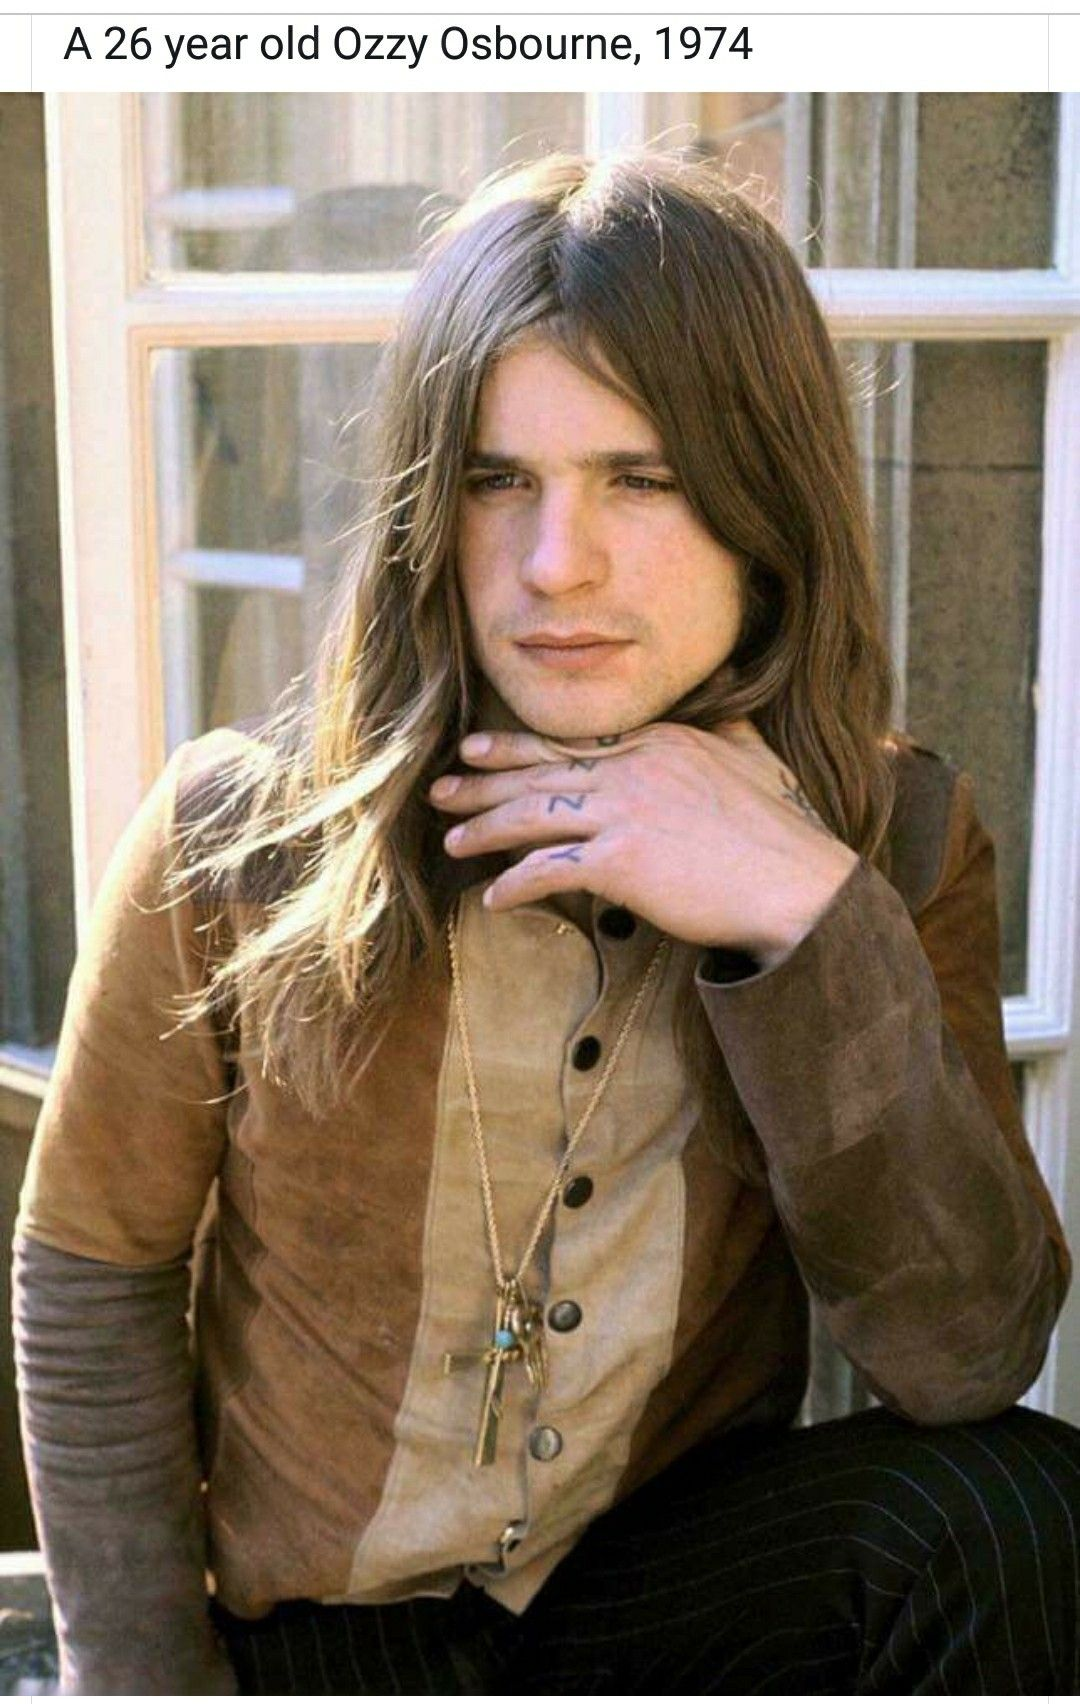 Pin by Anna Rodgers on dad birthday Ozzy osbourne, Black